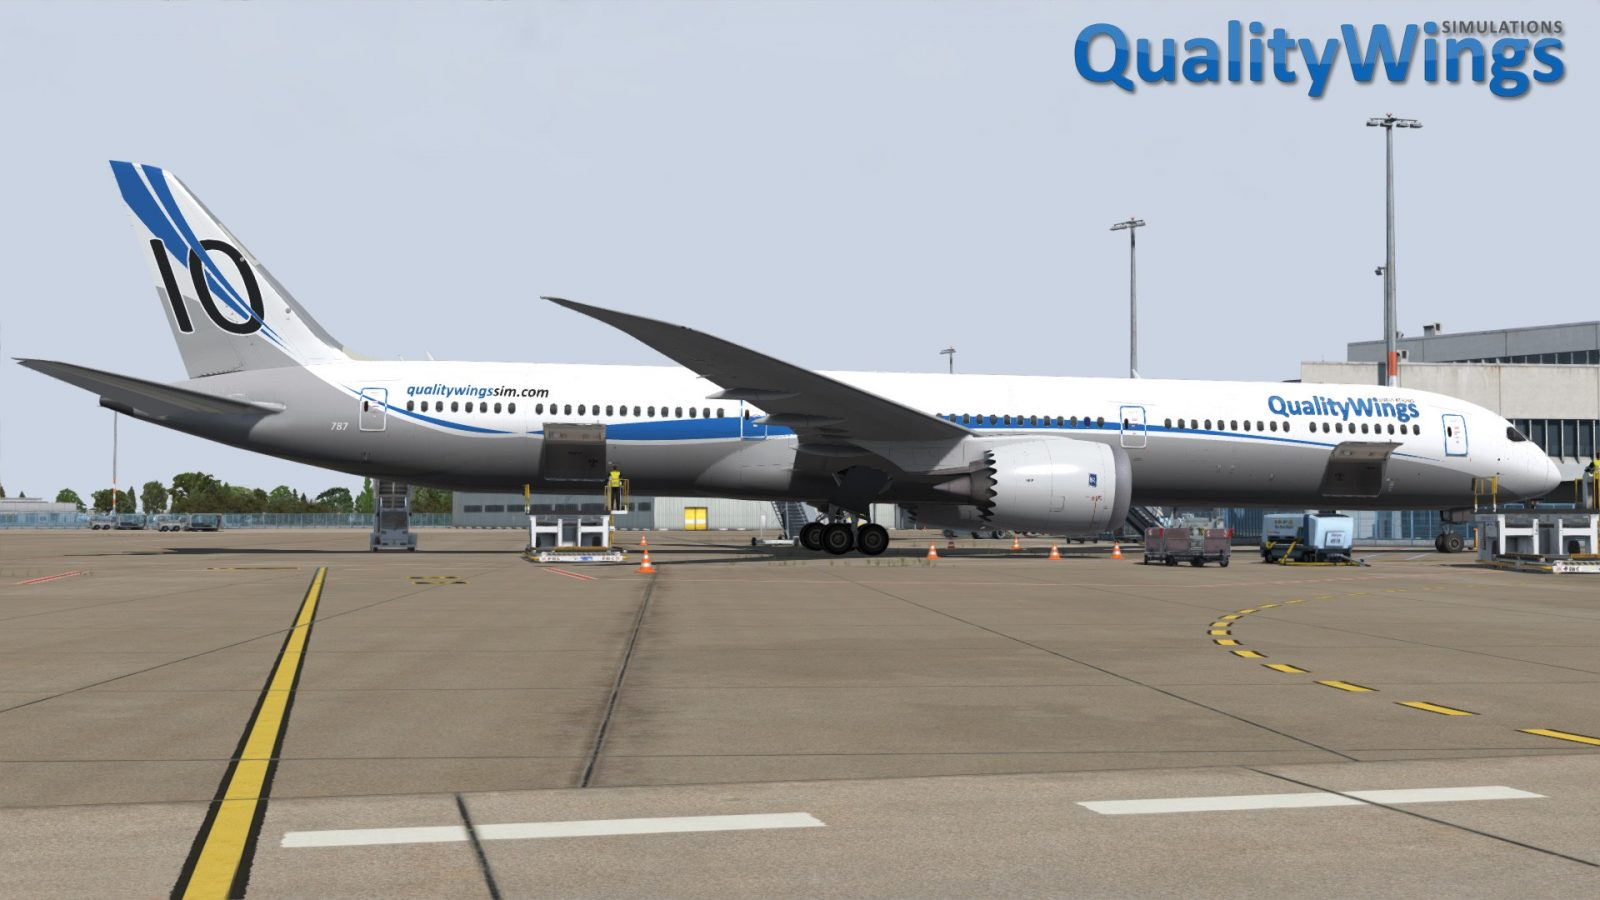 qualitywings-simulations-787-10-1-1600x9